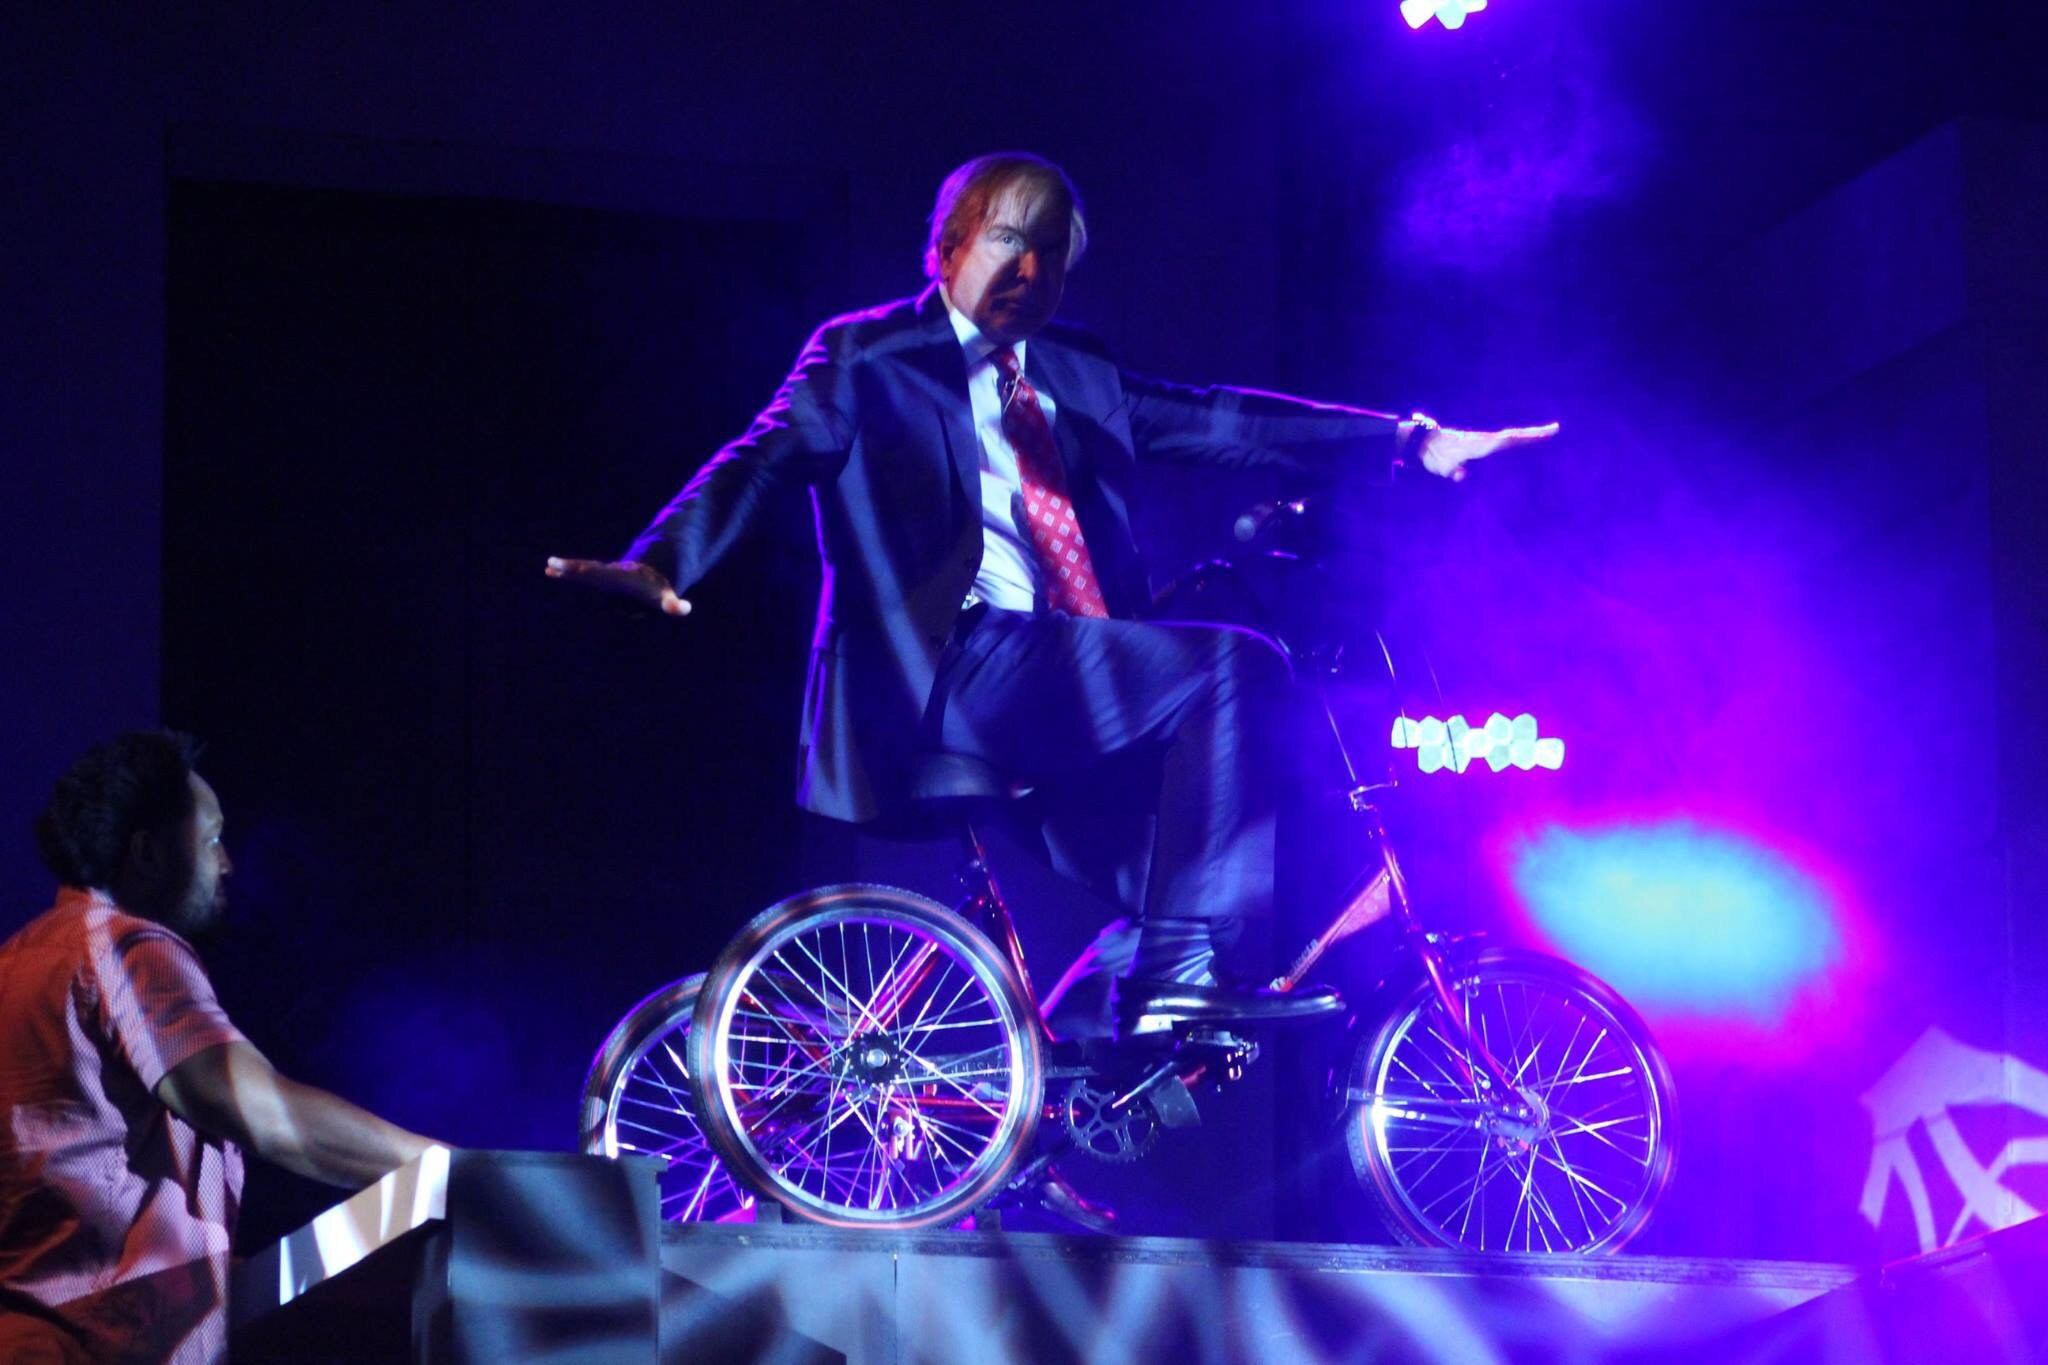 Pastor Steve Munsey rides tricycle